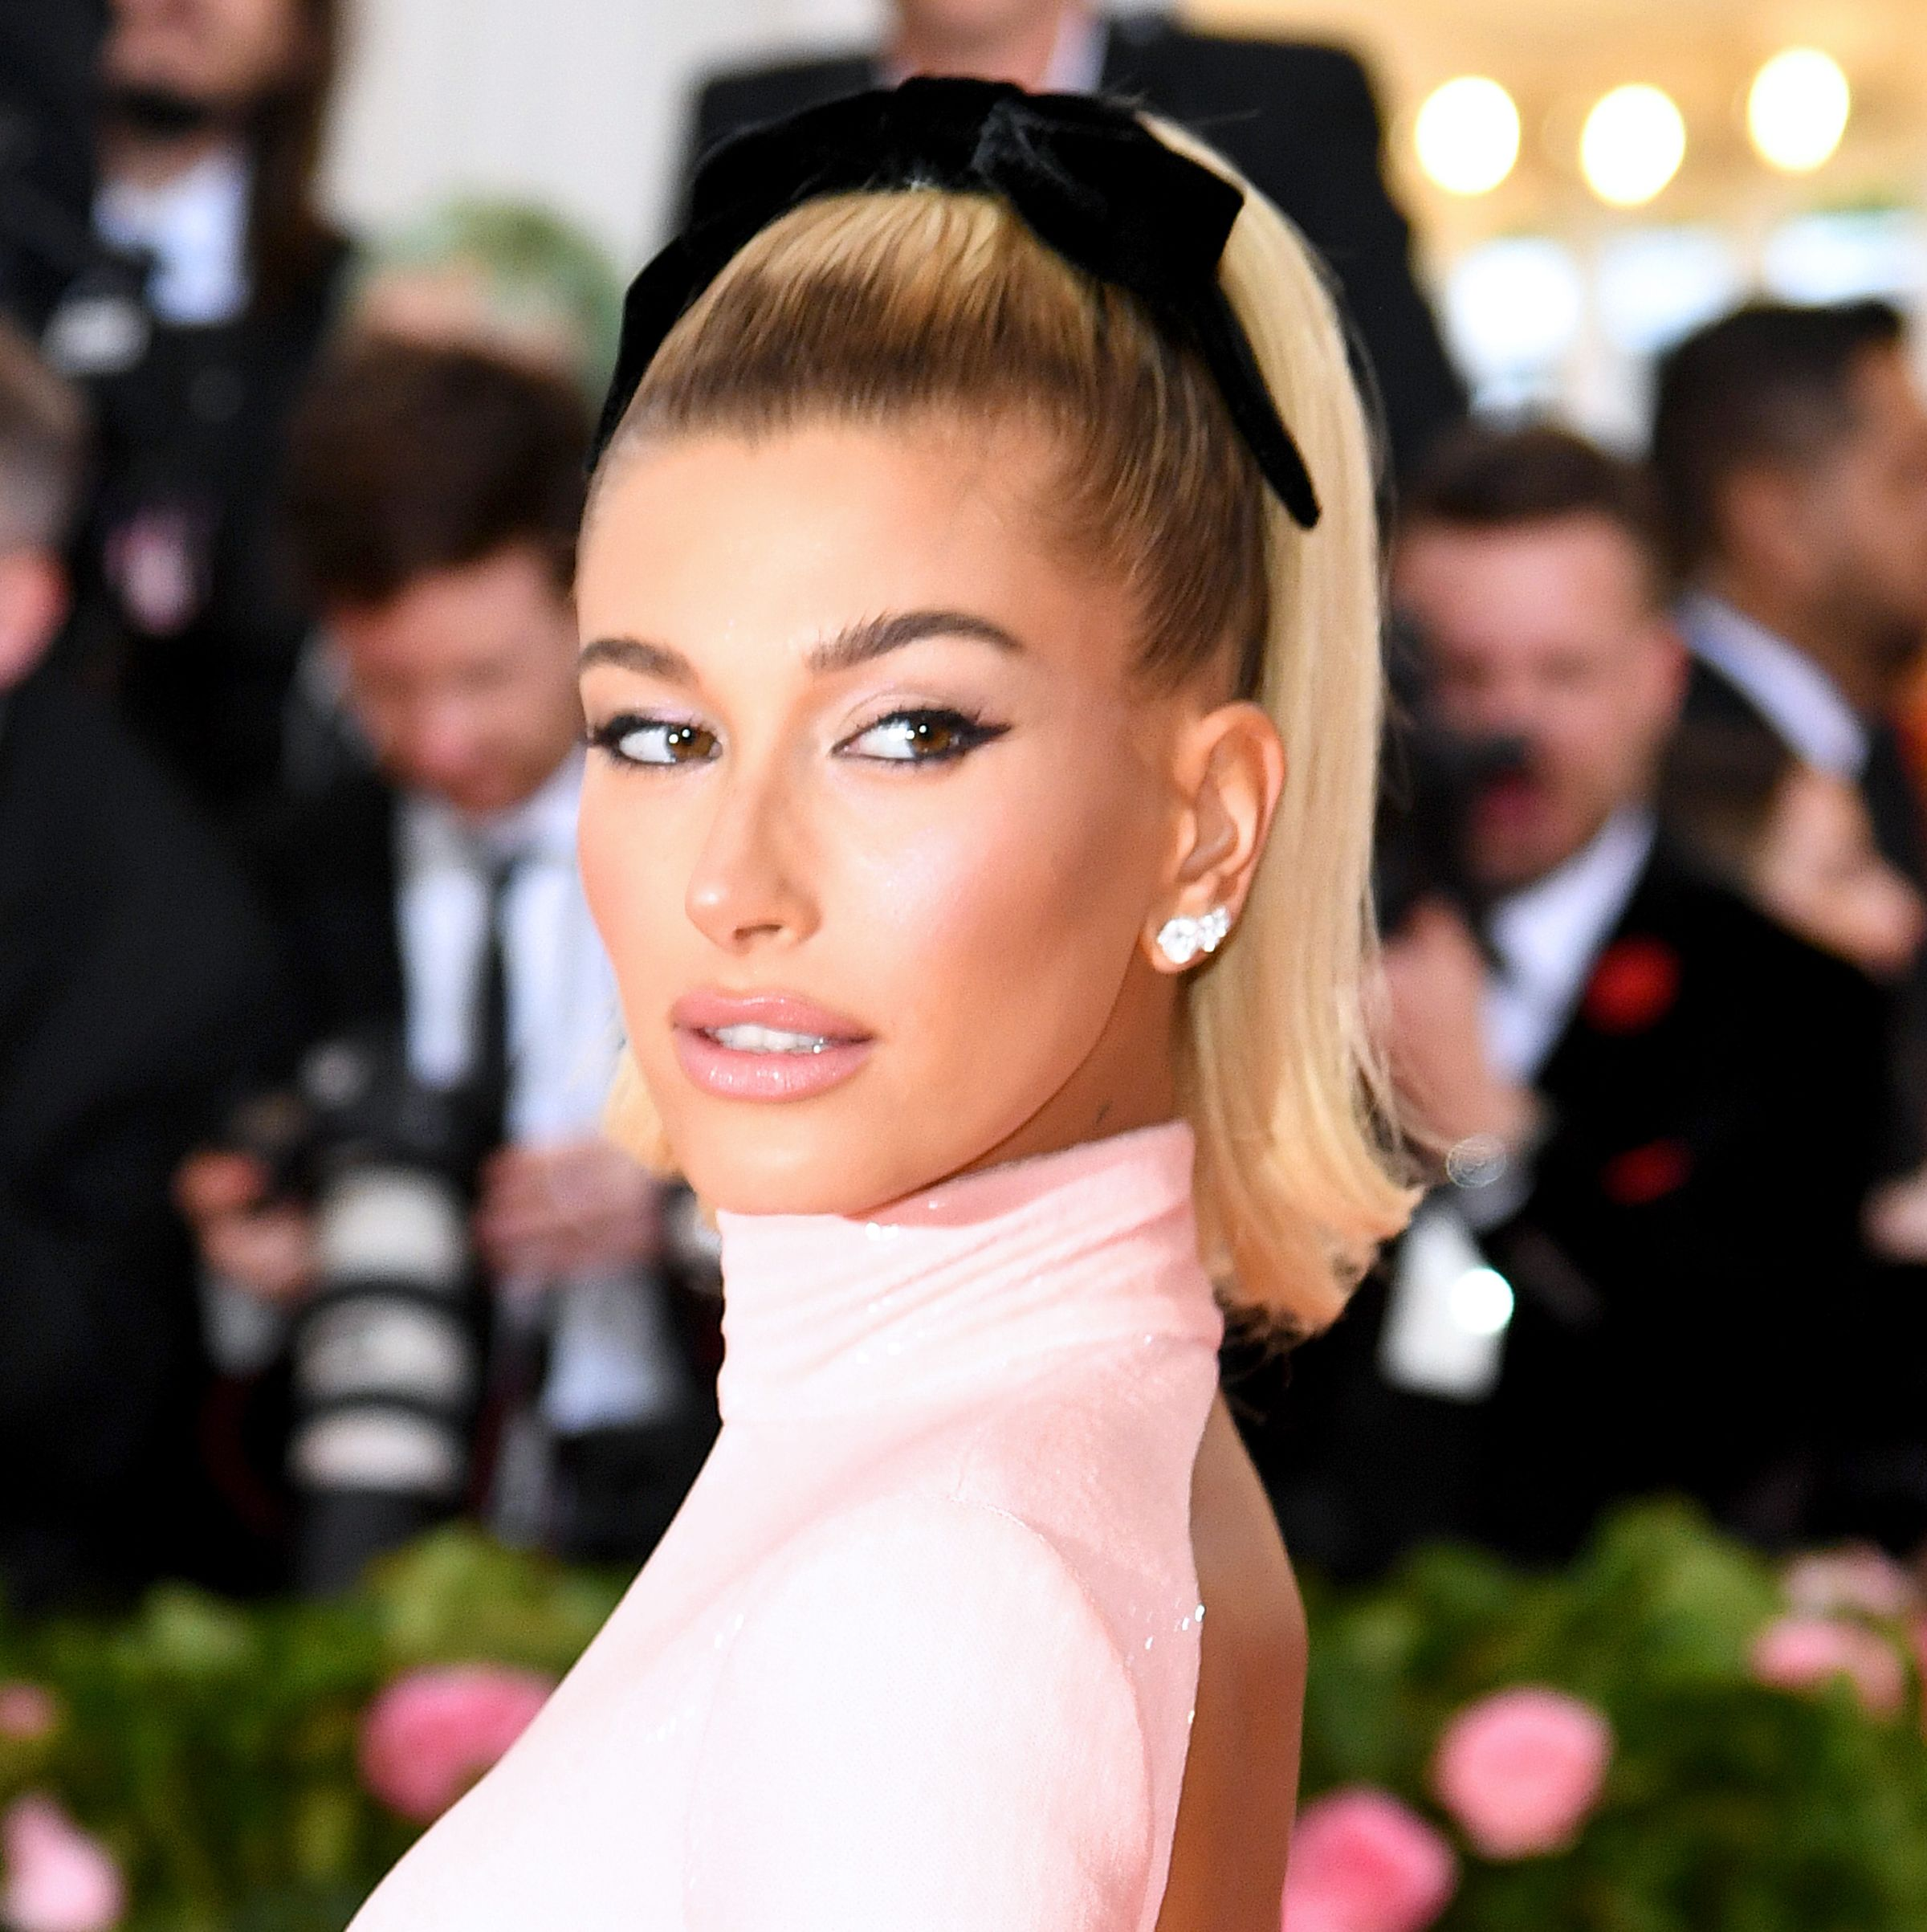 Hailey Bieber The model looked like a retro Barbie doll with a high, flippy blonde ponytail wrapped with a black velvet bow. Classic cat eyes finished the look.